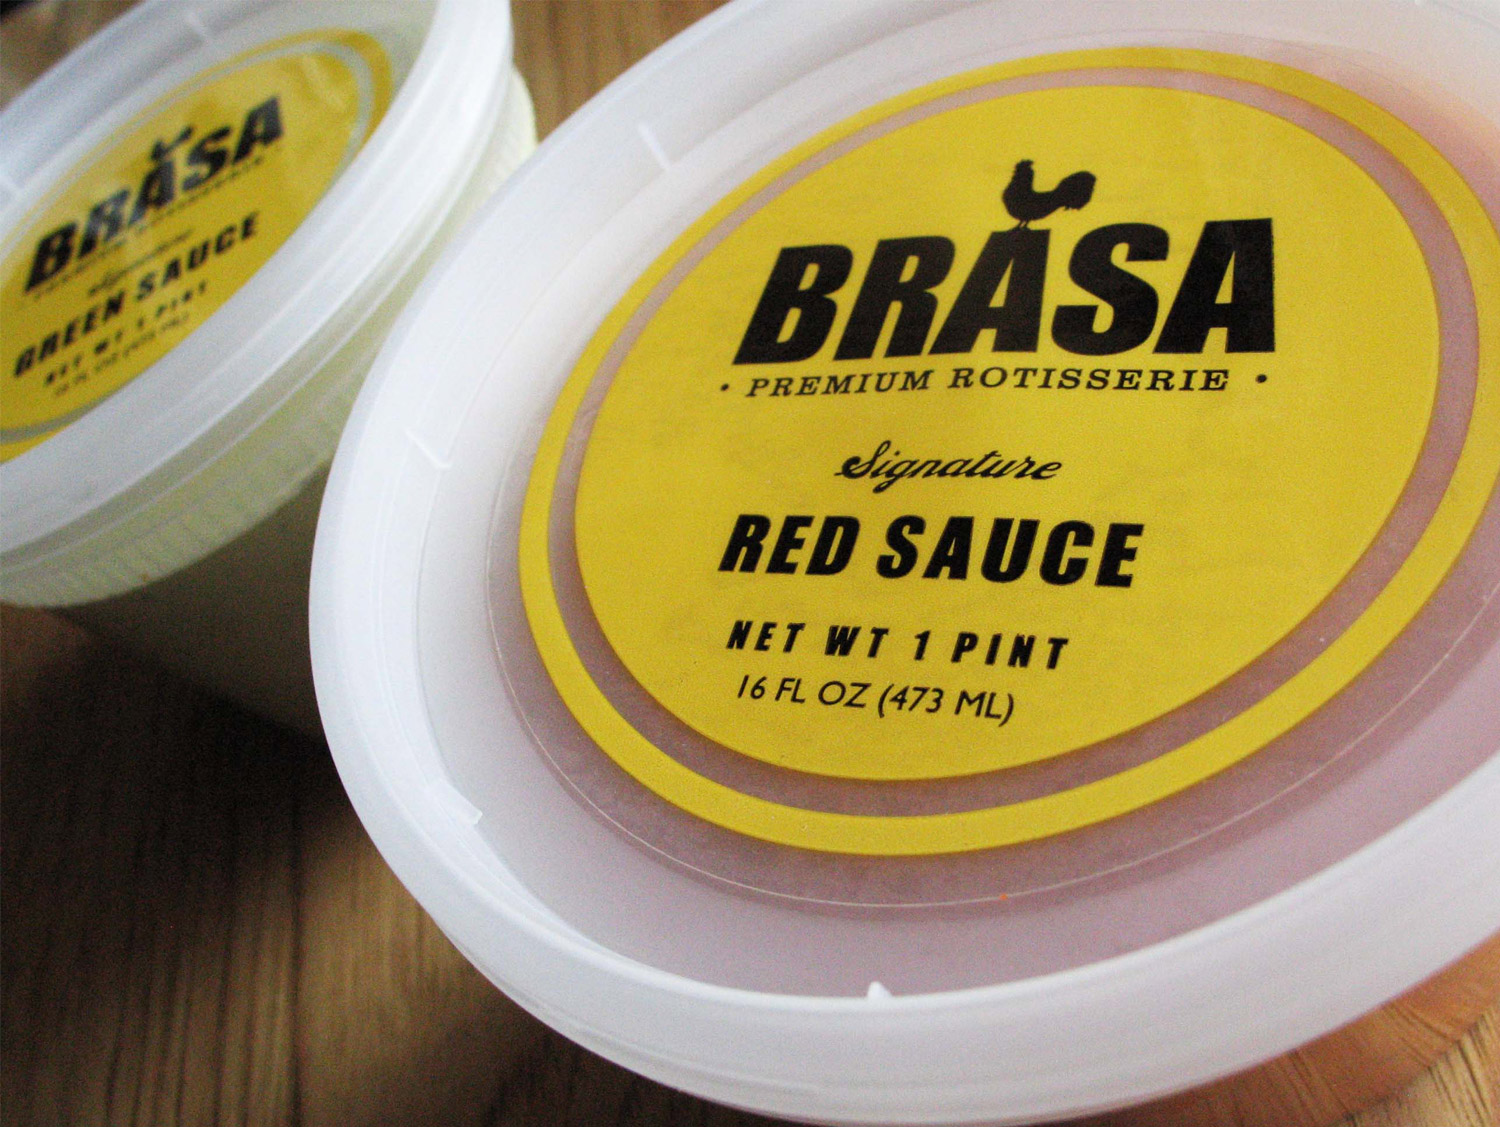 Brasa-Packaging-010.jpg